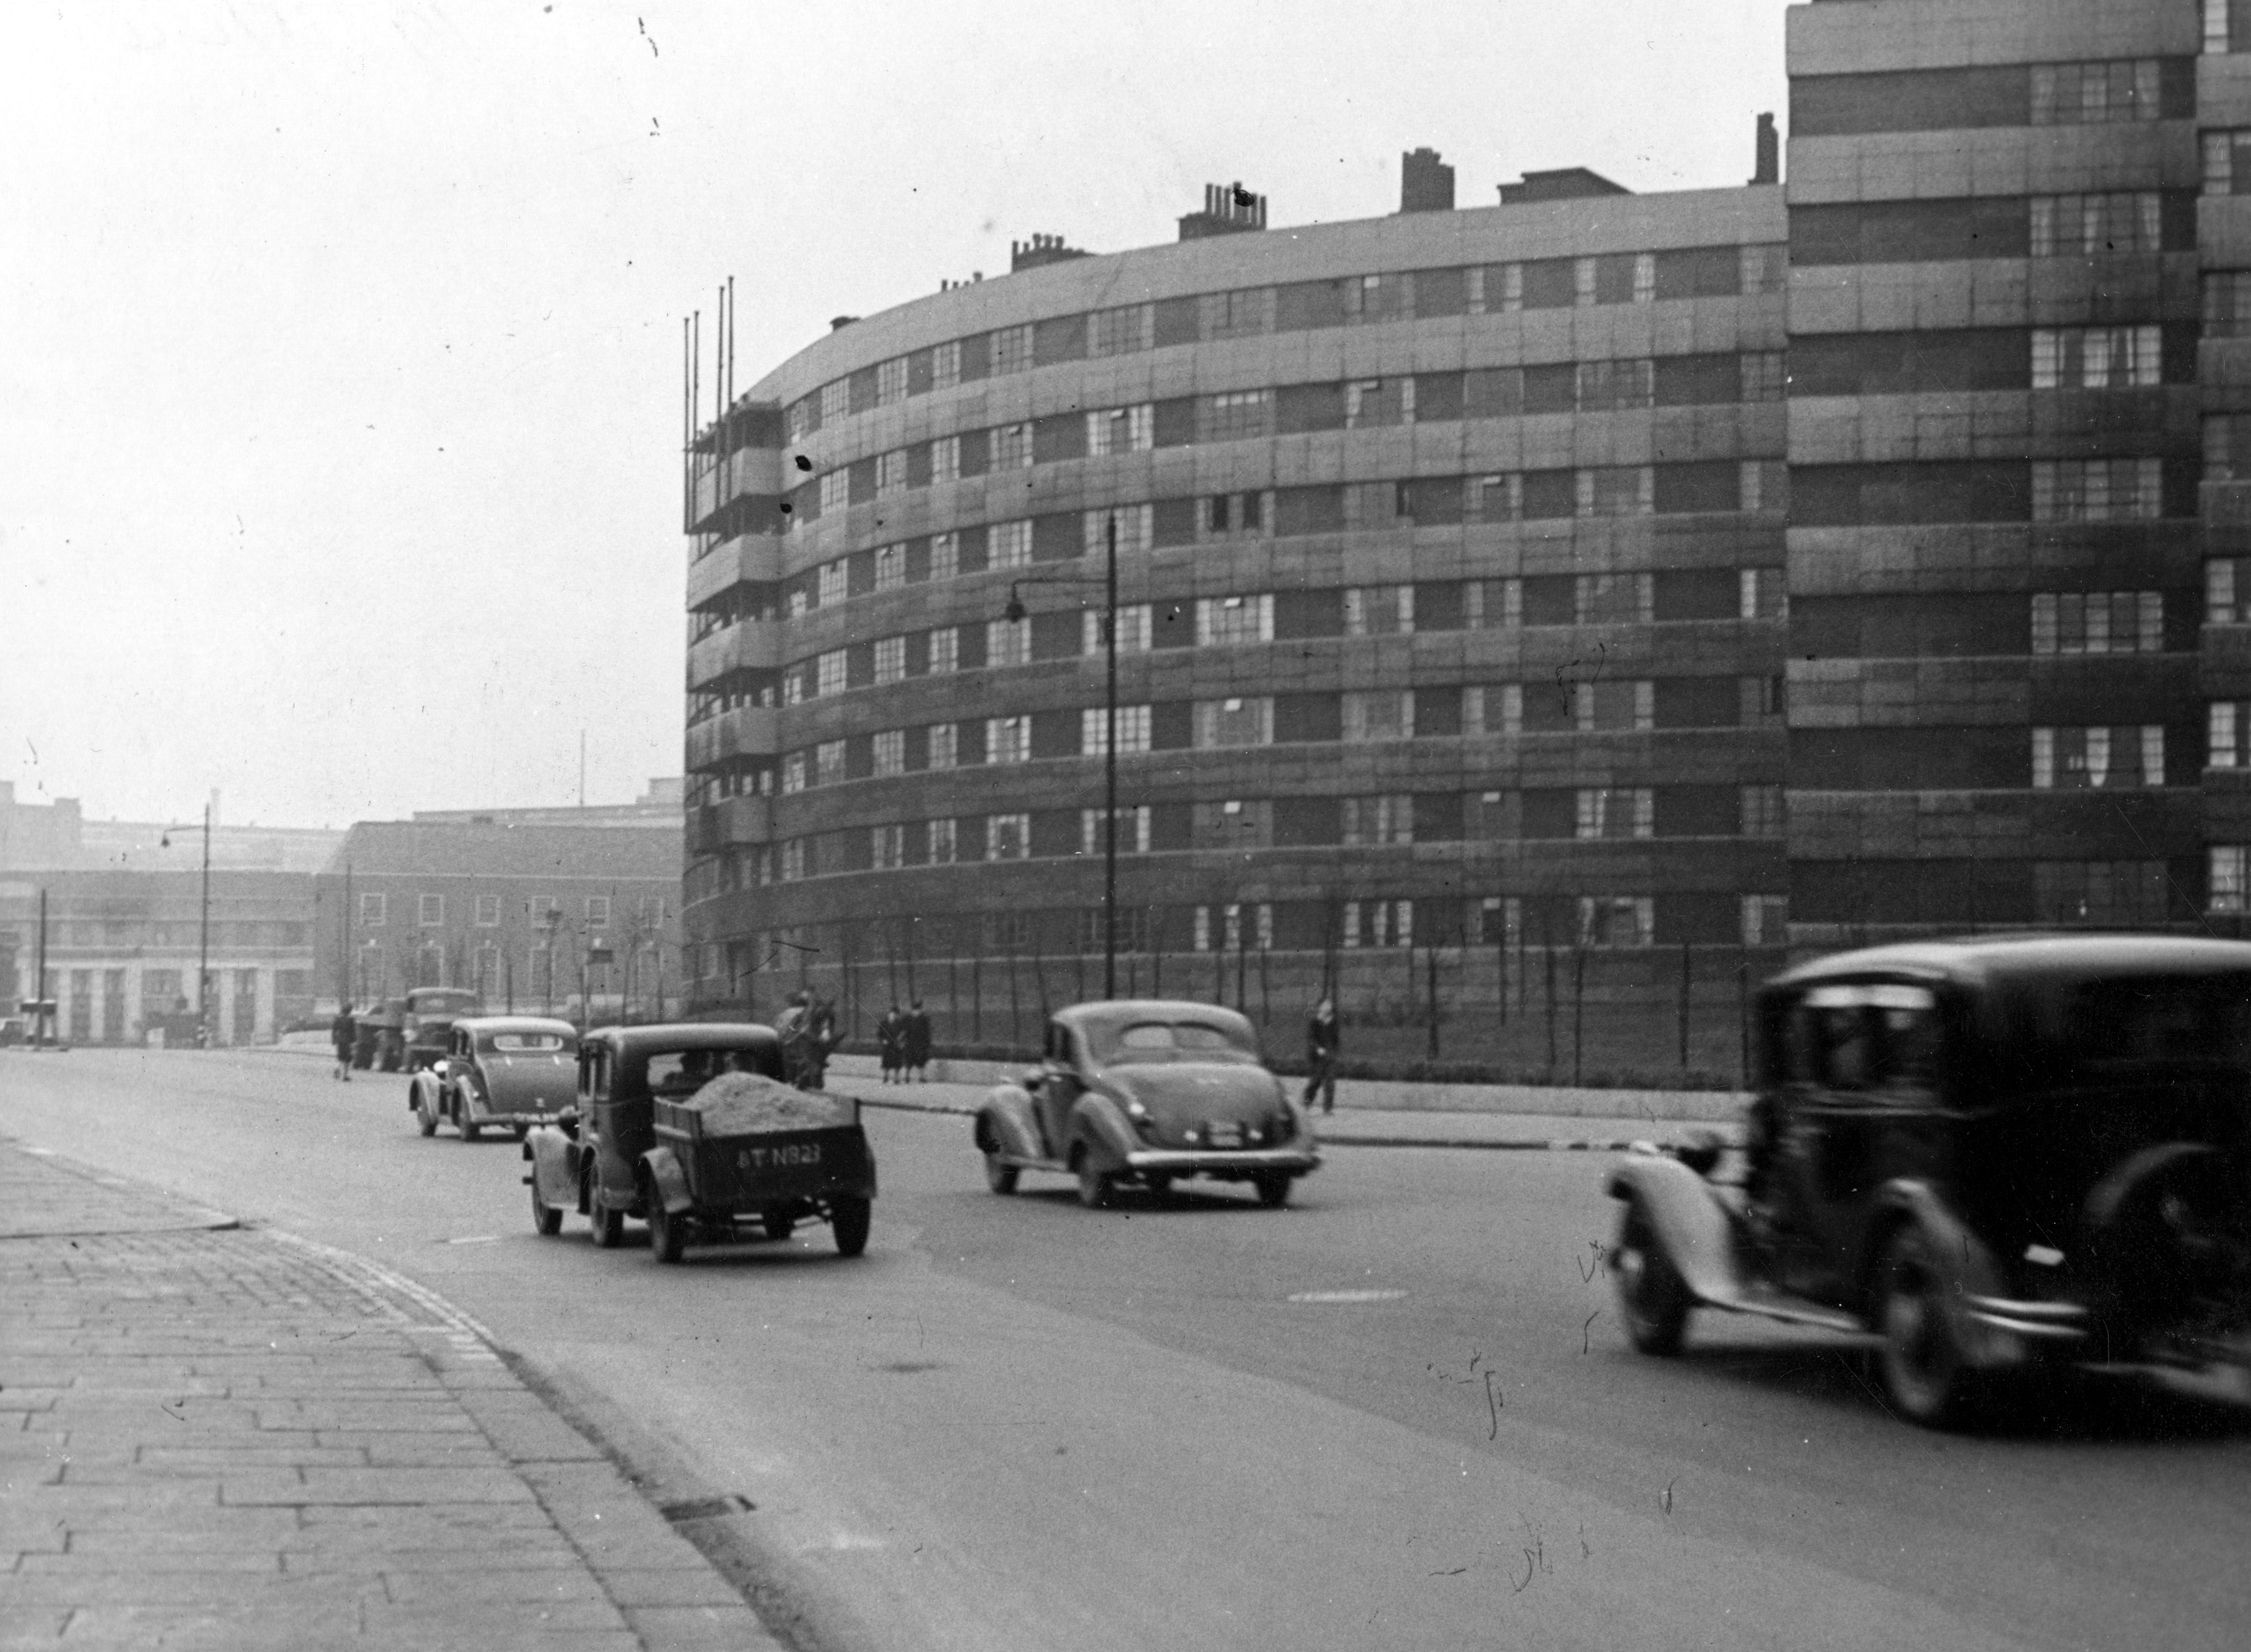 A large building of flats on the left hand side of the photo with a road running past them with cars on.